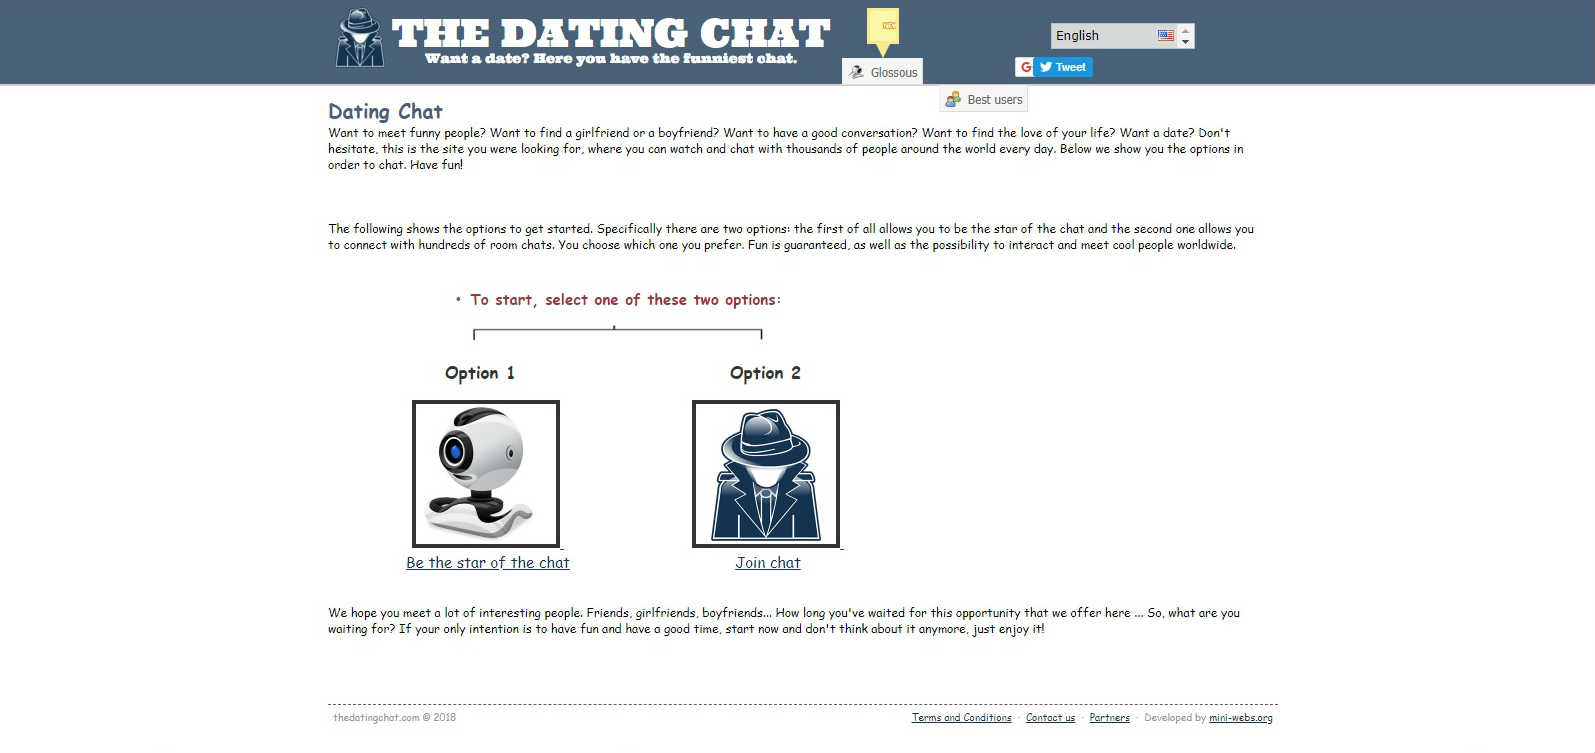 Sites like the dating chat